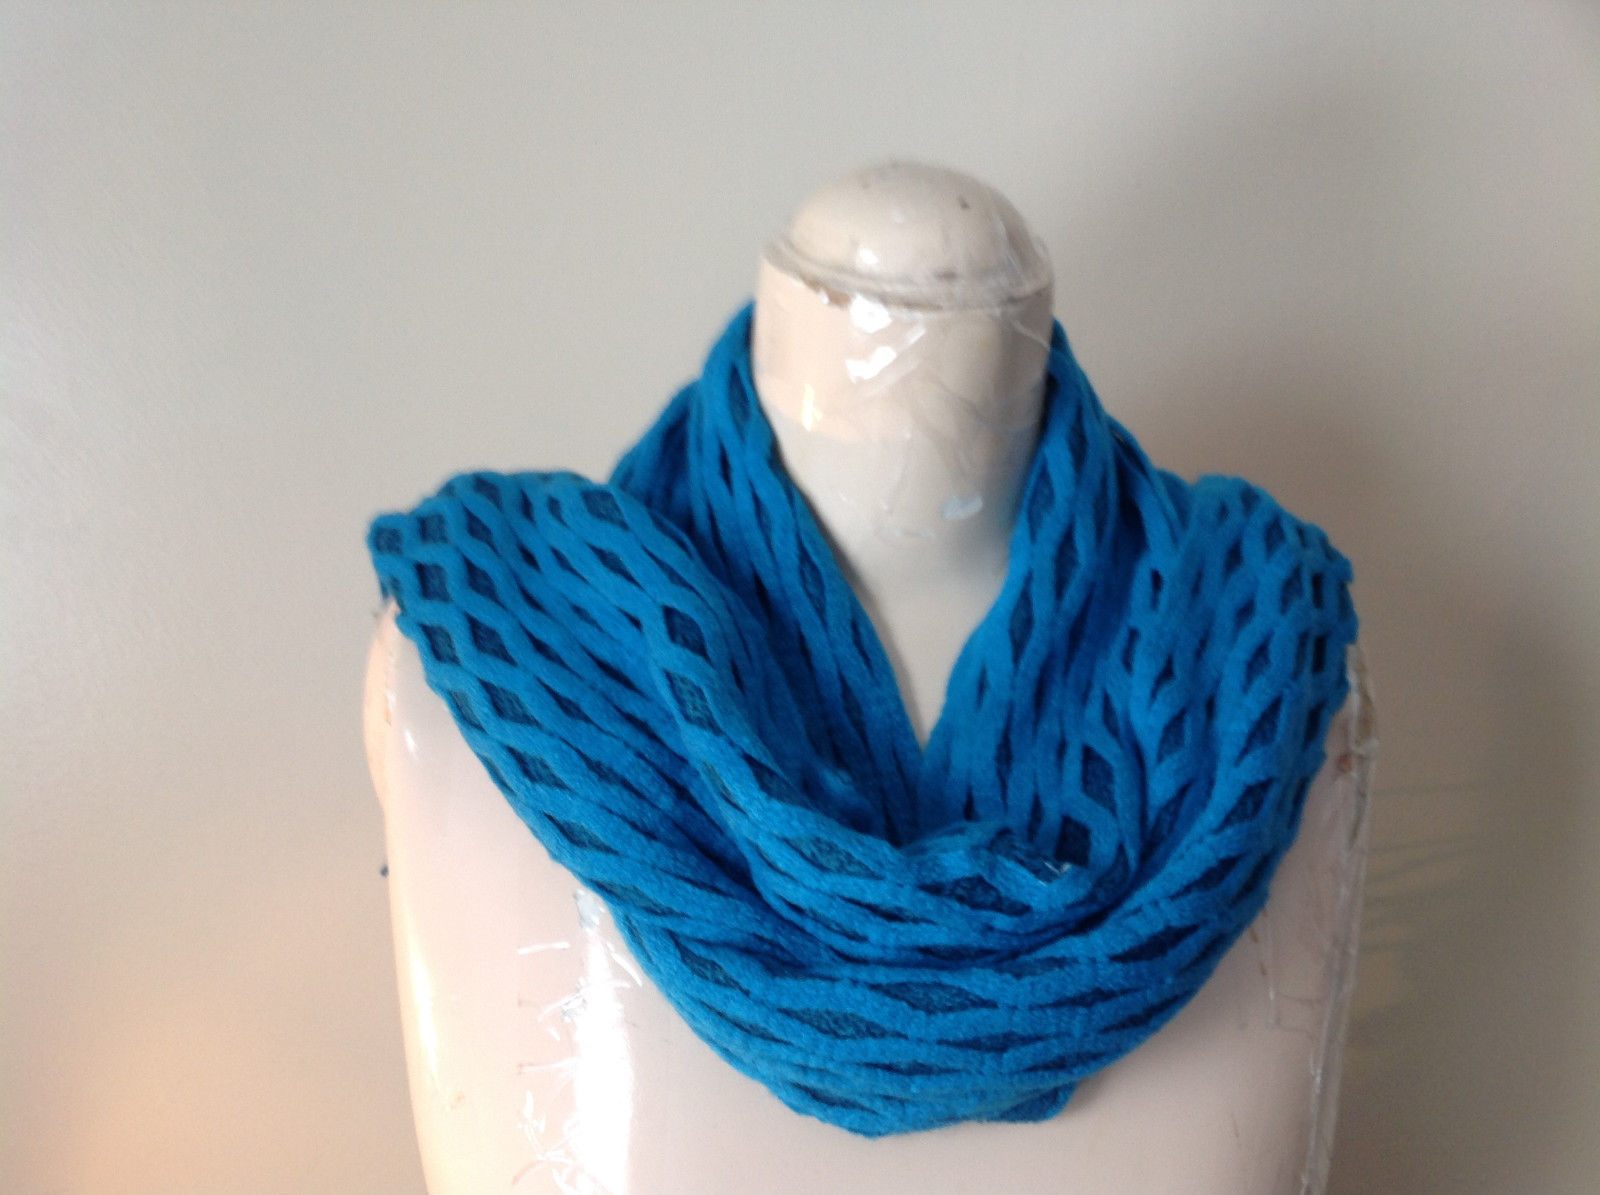 Blue Filigree Web Diamond Light Weight Stretchy Scarf See Measurements Below